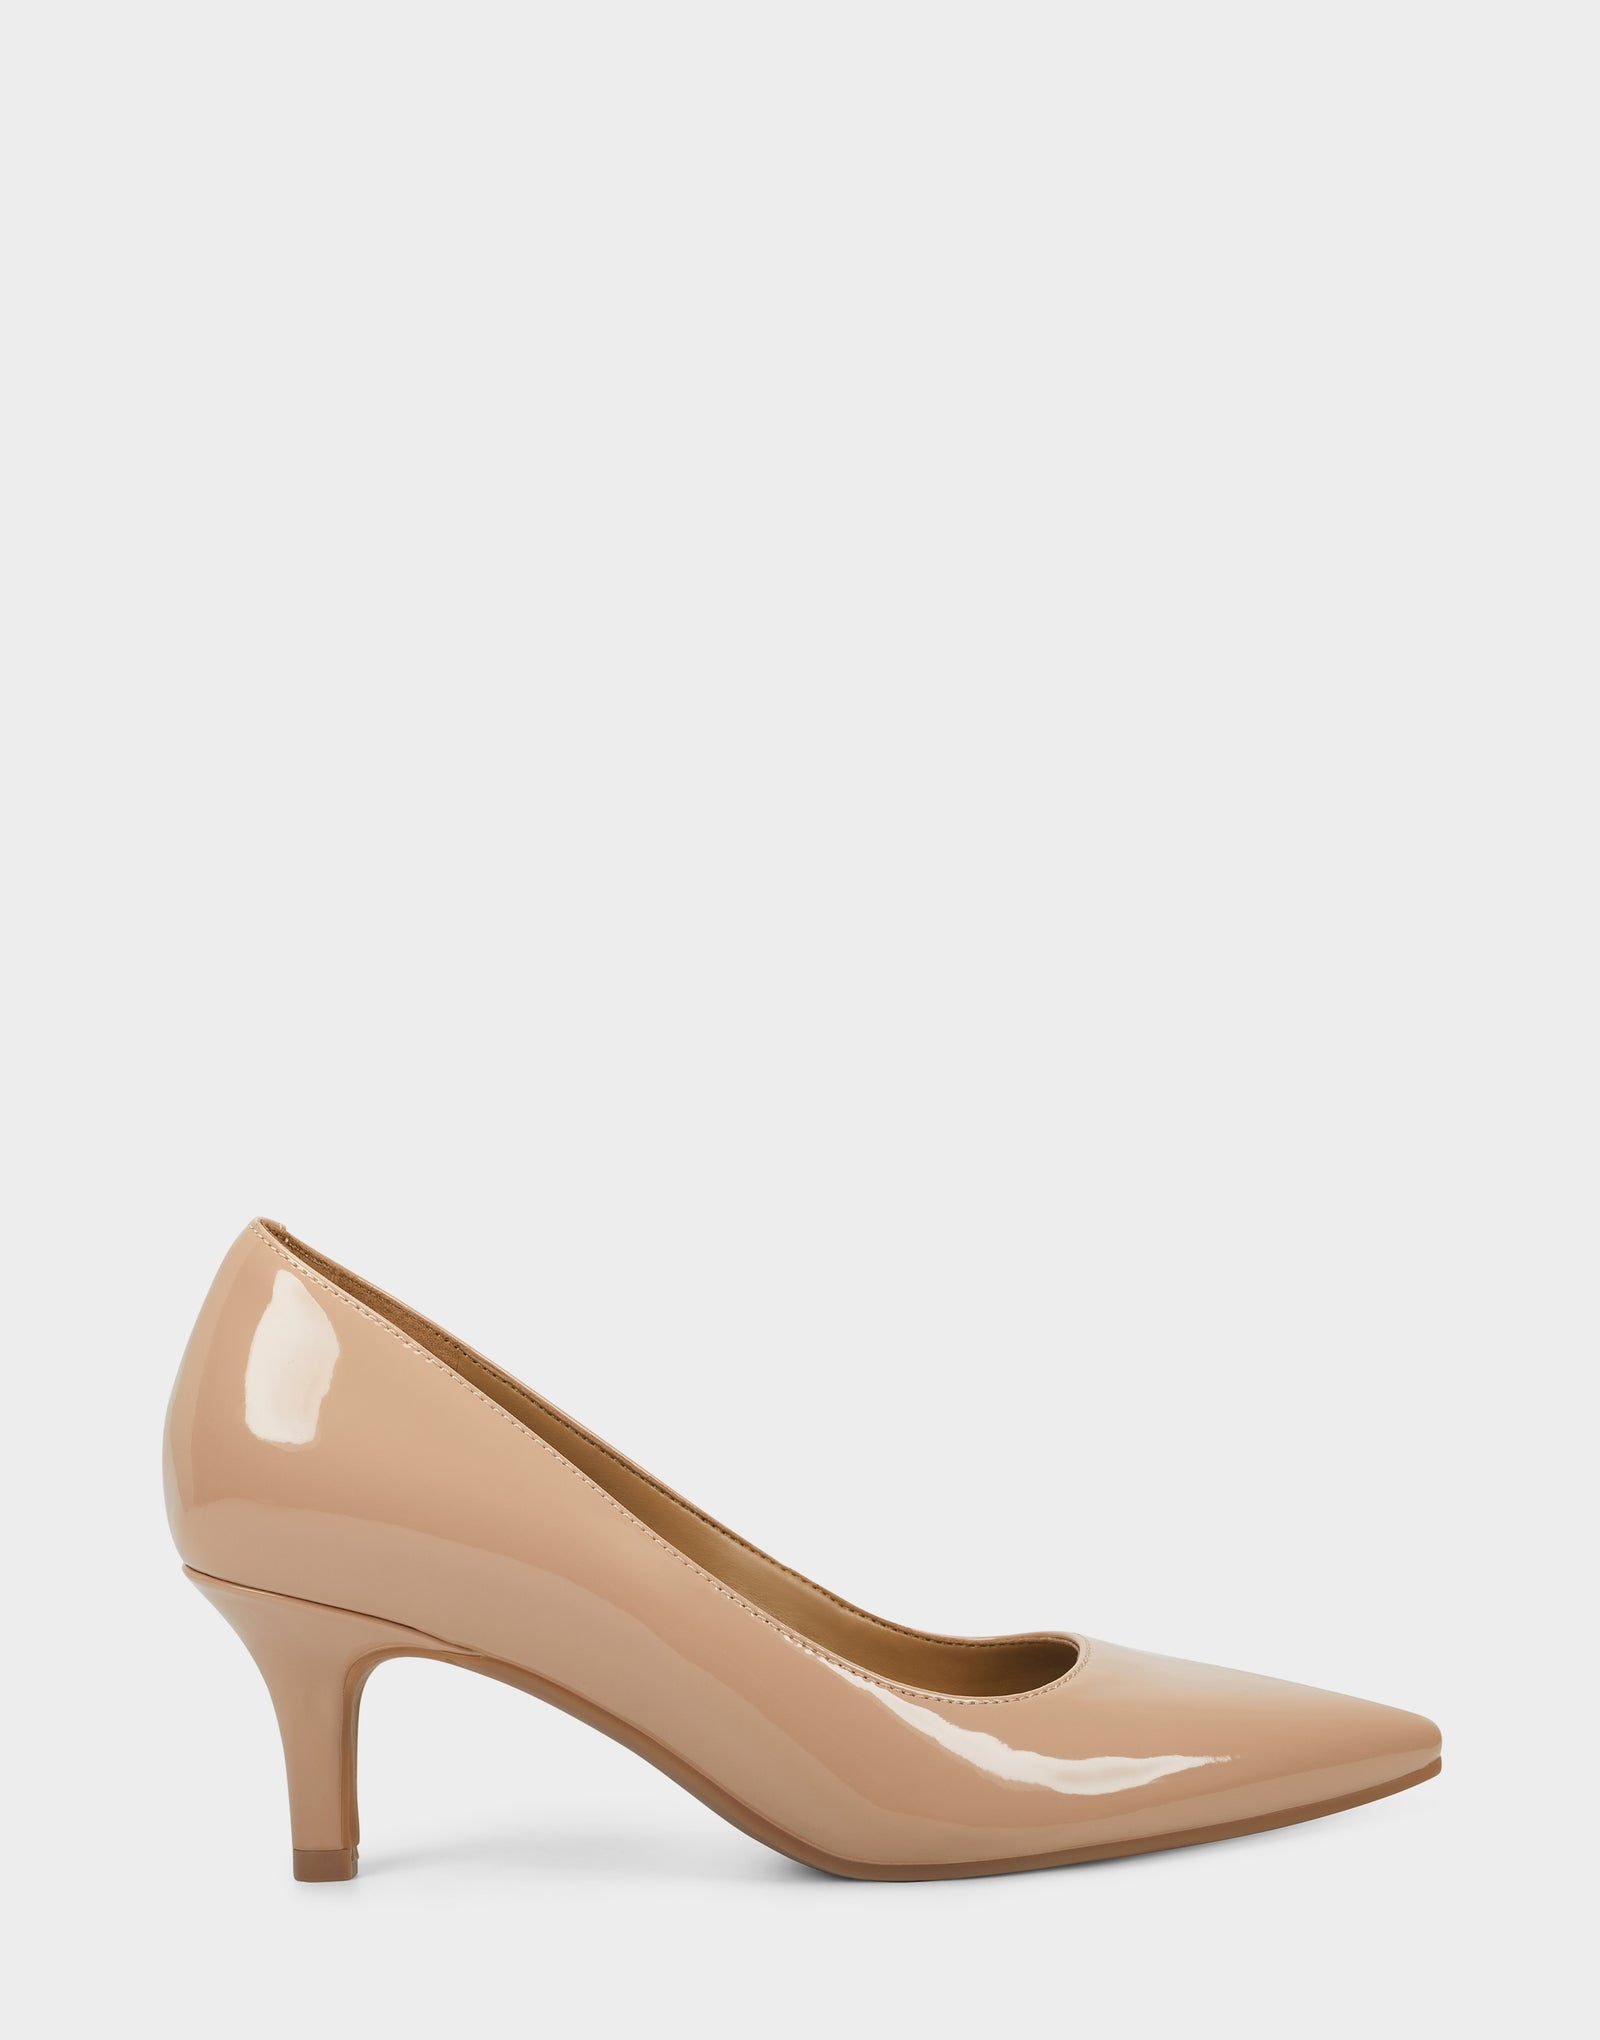 Bought these nude heels last night Can't wait to wear them